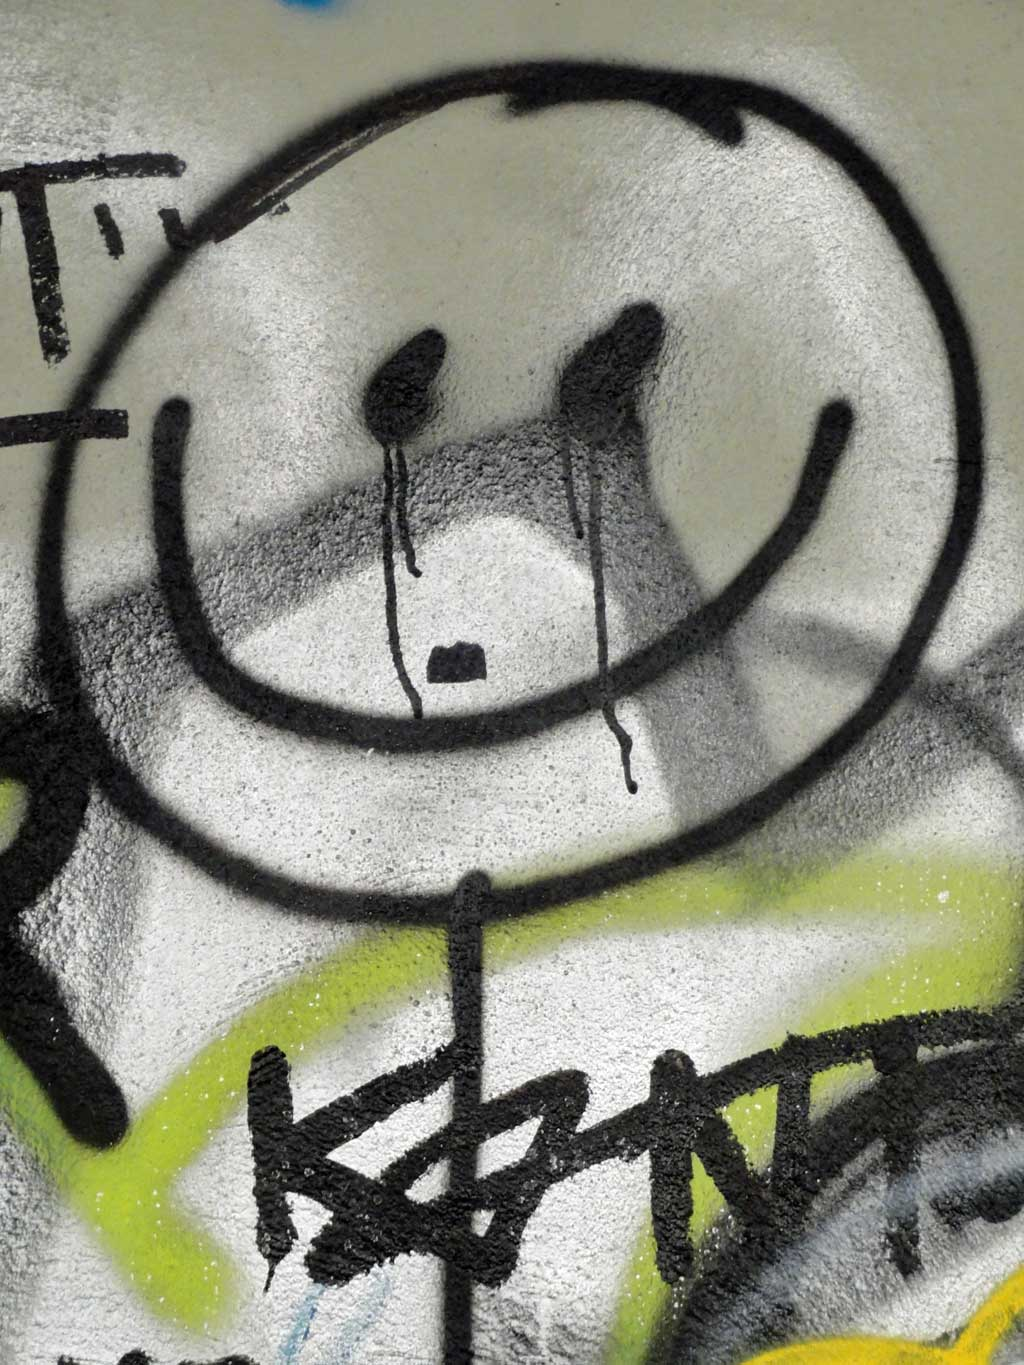 Smiley mit Drips in Frankfurt